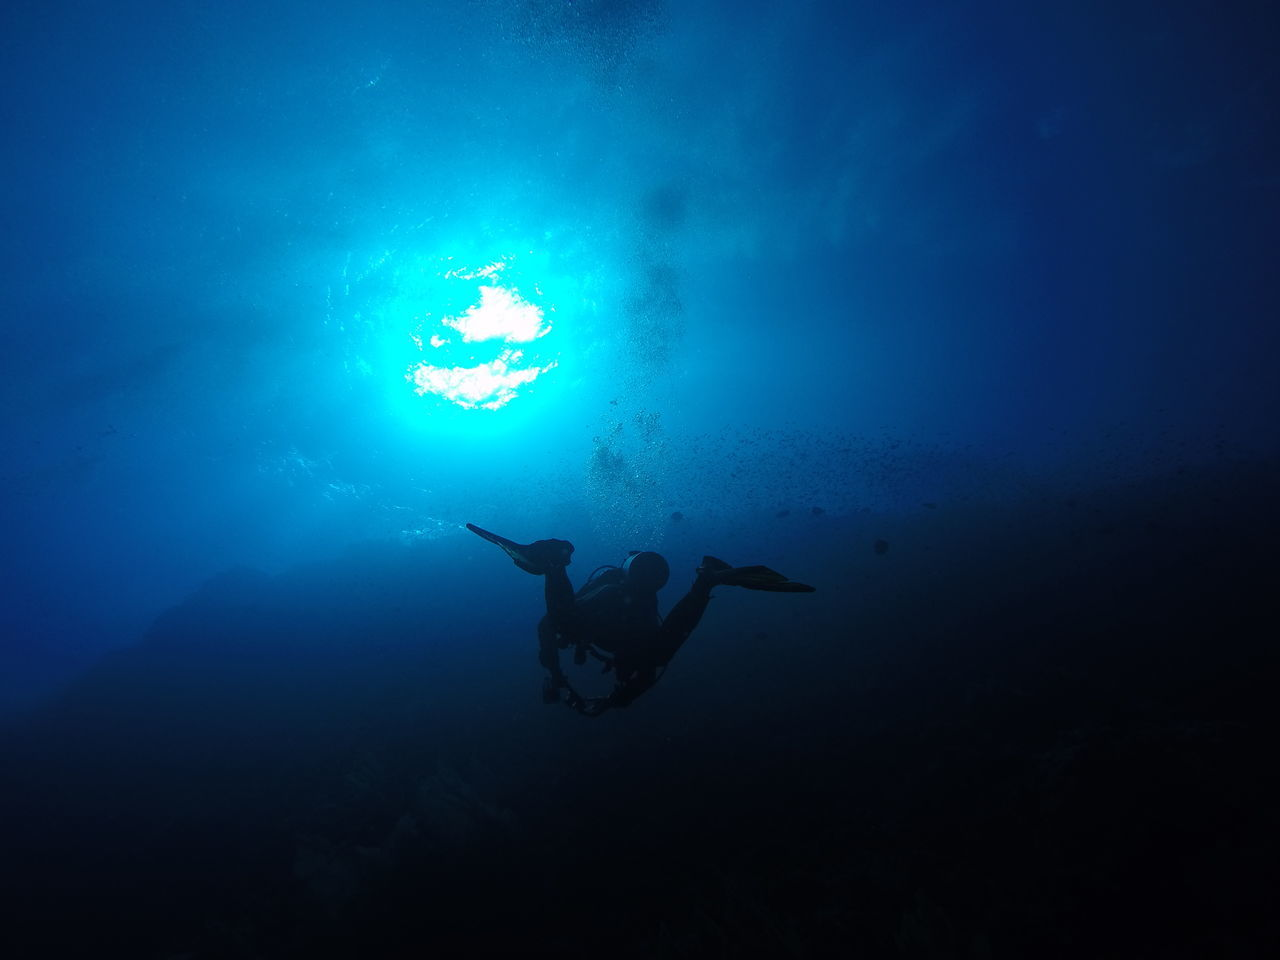 underwater, undersea, sea, swimming, water, sport, aquatic sport, scuba diving, adventure, one person, leisure activity, real people, nature, exploration, blue, unrecognizable person, diving flipper, diving equipment, full length, underwater diving